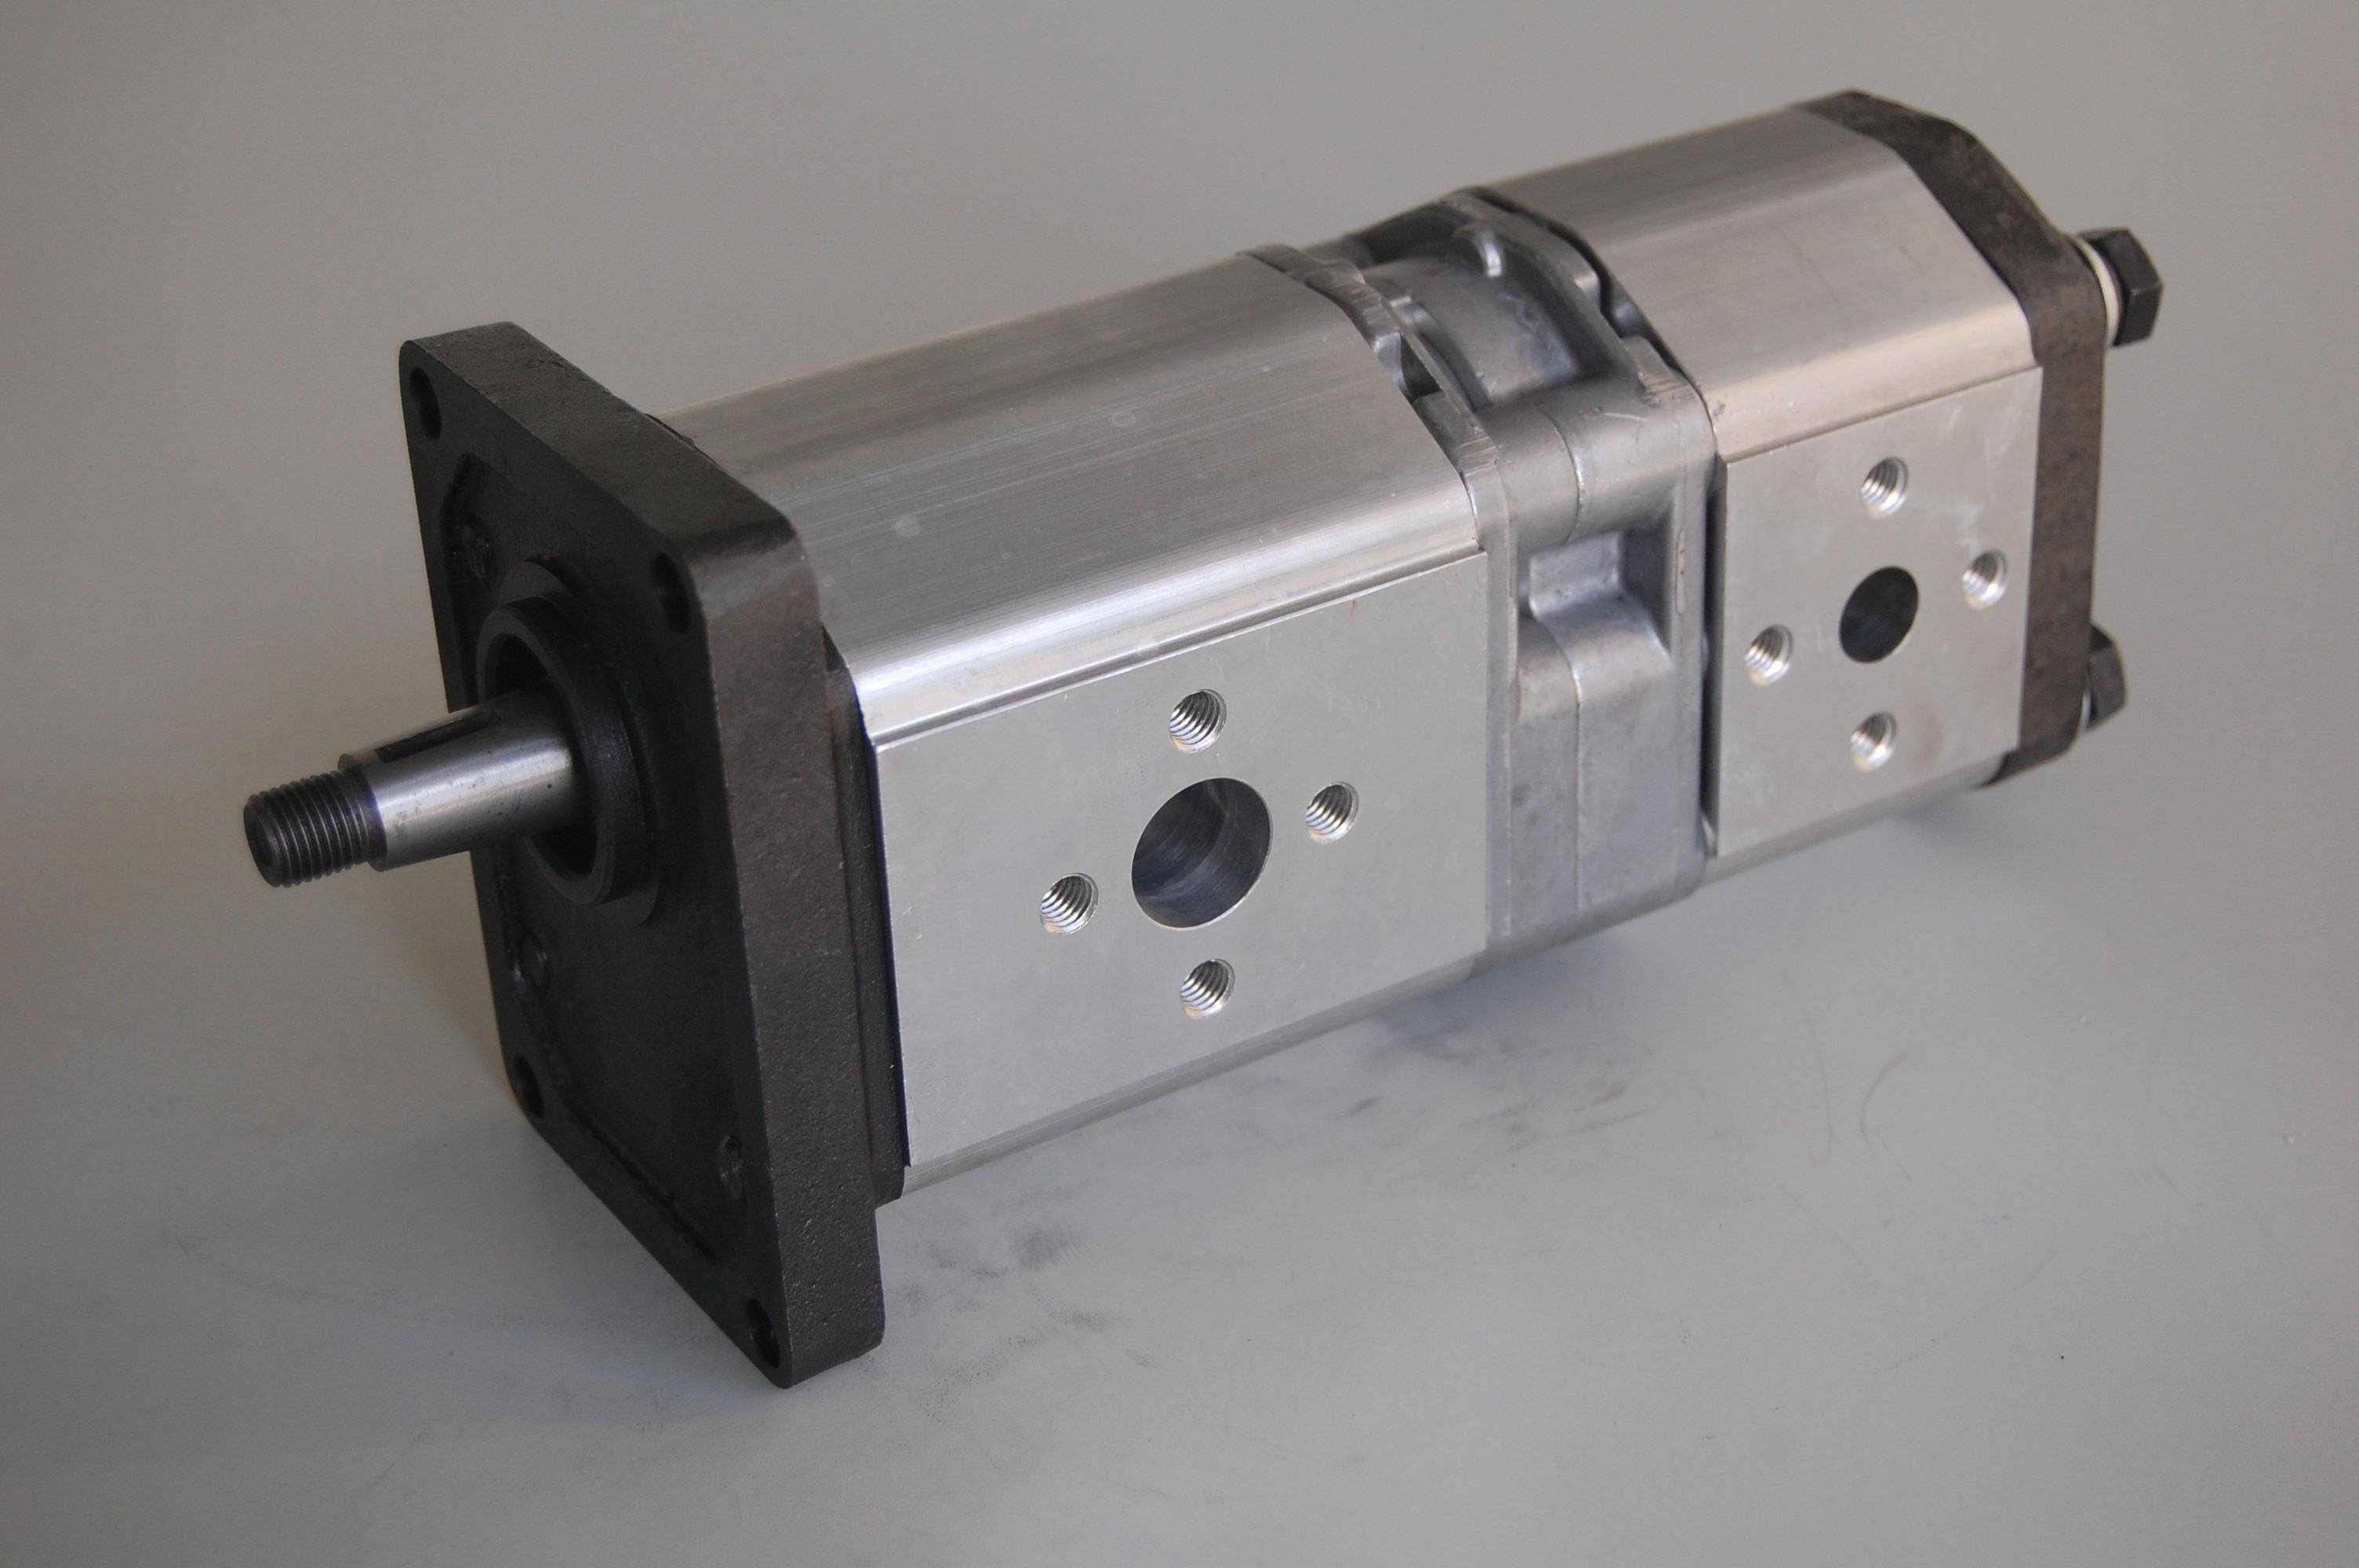 Uchida Rexroth Hydraulic Gear Pump for Forklift Trucks, Cranes, Bulldozers, Loaders, Kubota Excavato